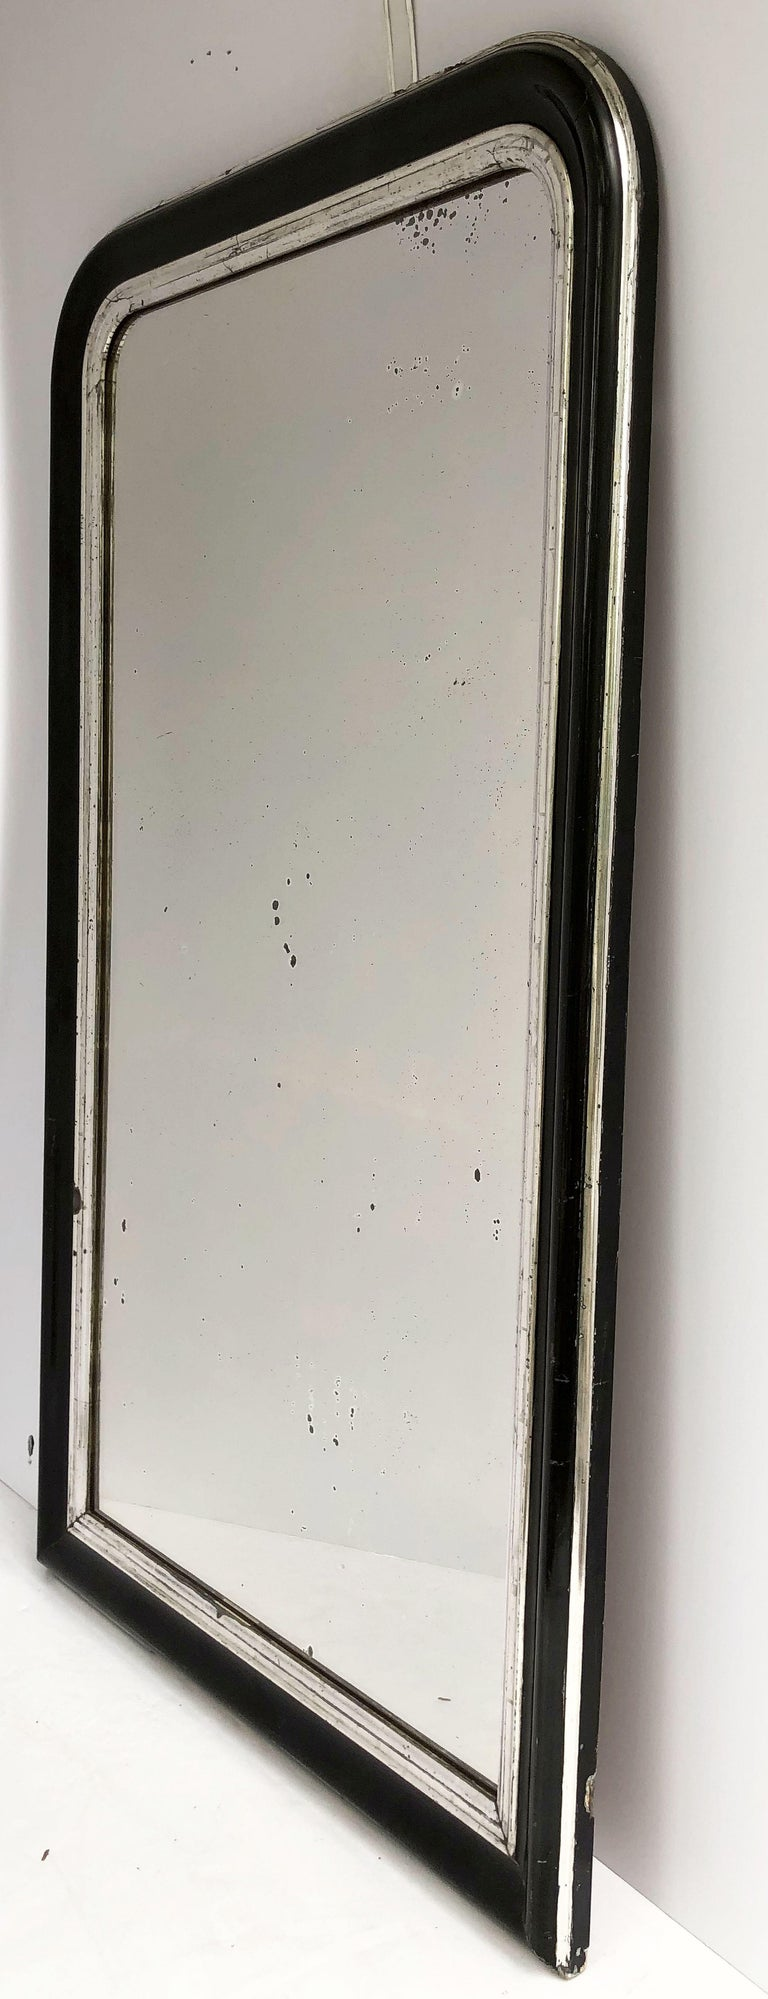 French Napoleon III Period Black and Silver Mirror from France (H 53 1/2 x W 32 1/4) For Sale